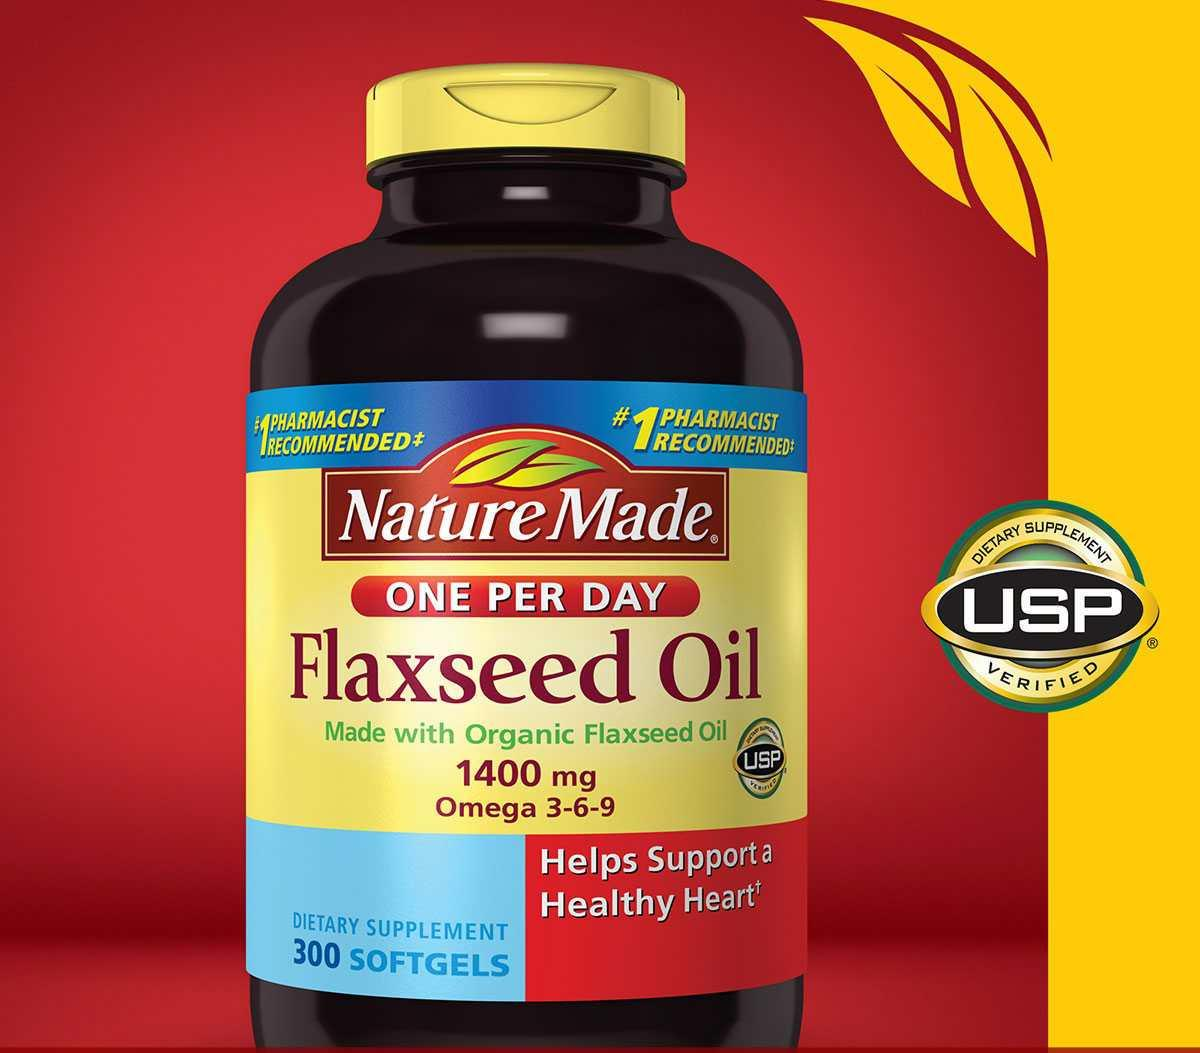 Nature Made Philippines Price List Softgel Triple Flex Strength 170 Caplets Flaxseed Oil 1400mg Omega 3 6 9 300 Softgels